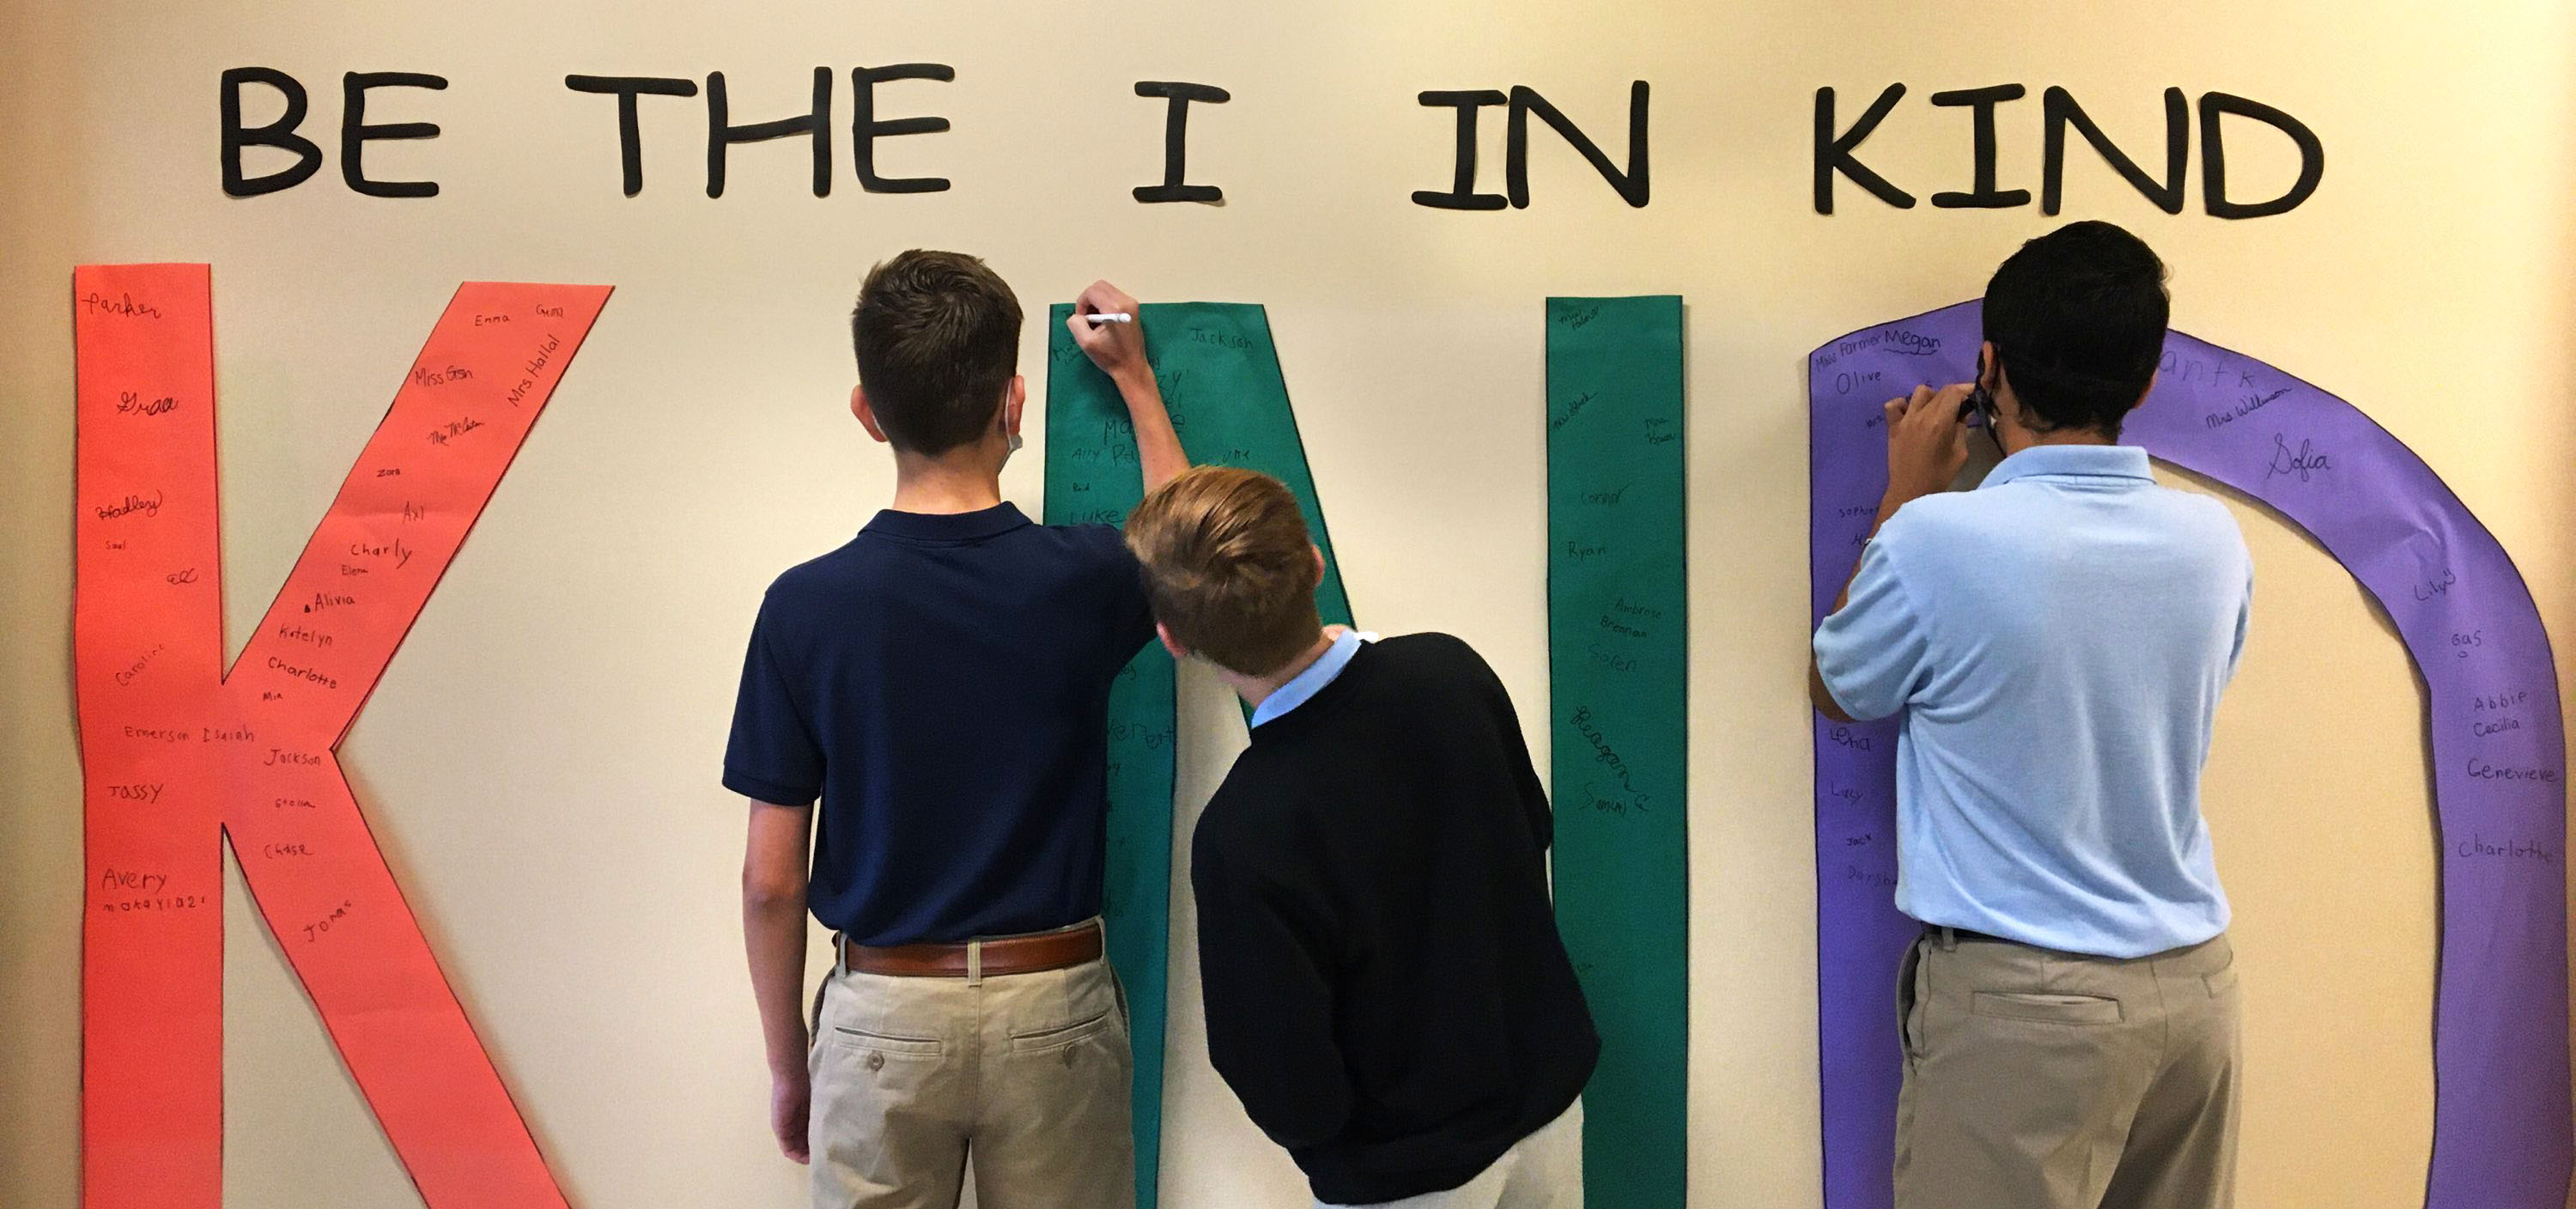 3 eight grade students standing in front of wall display that reads Be the I in KIND.